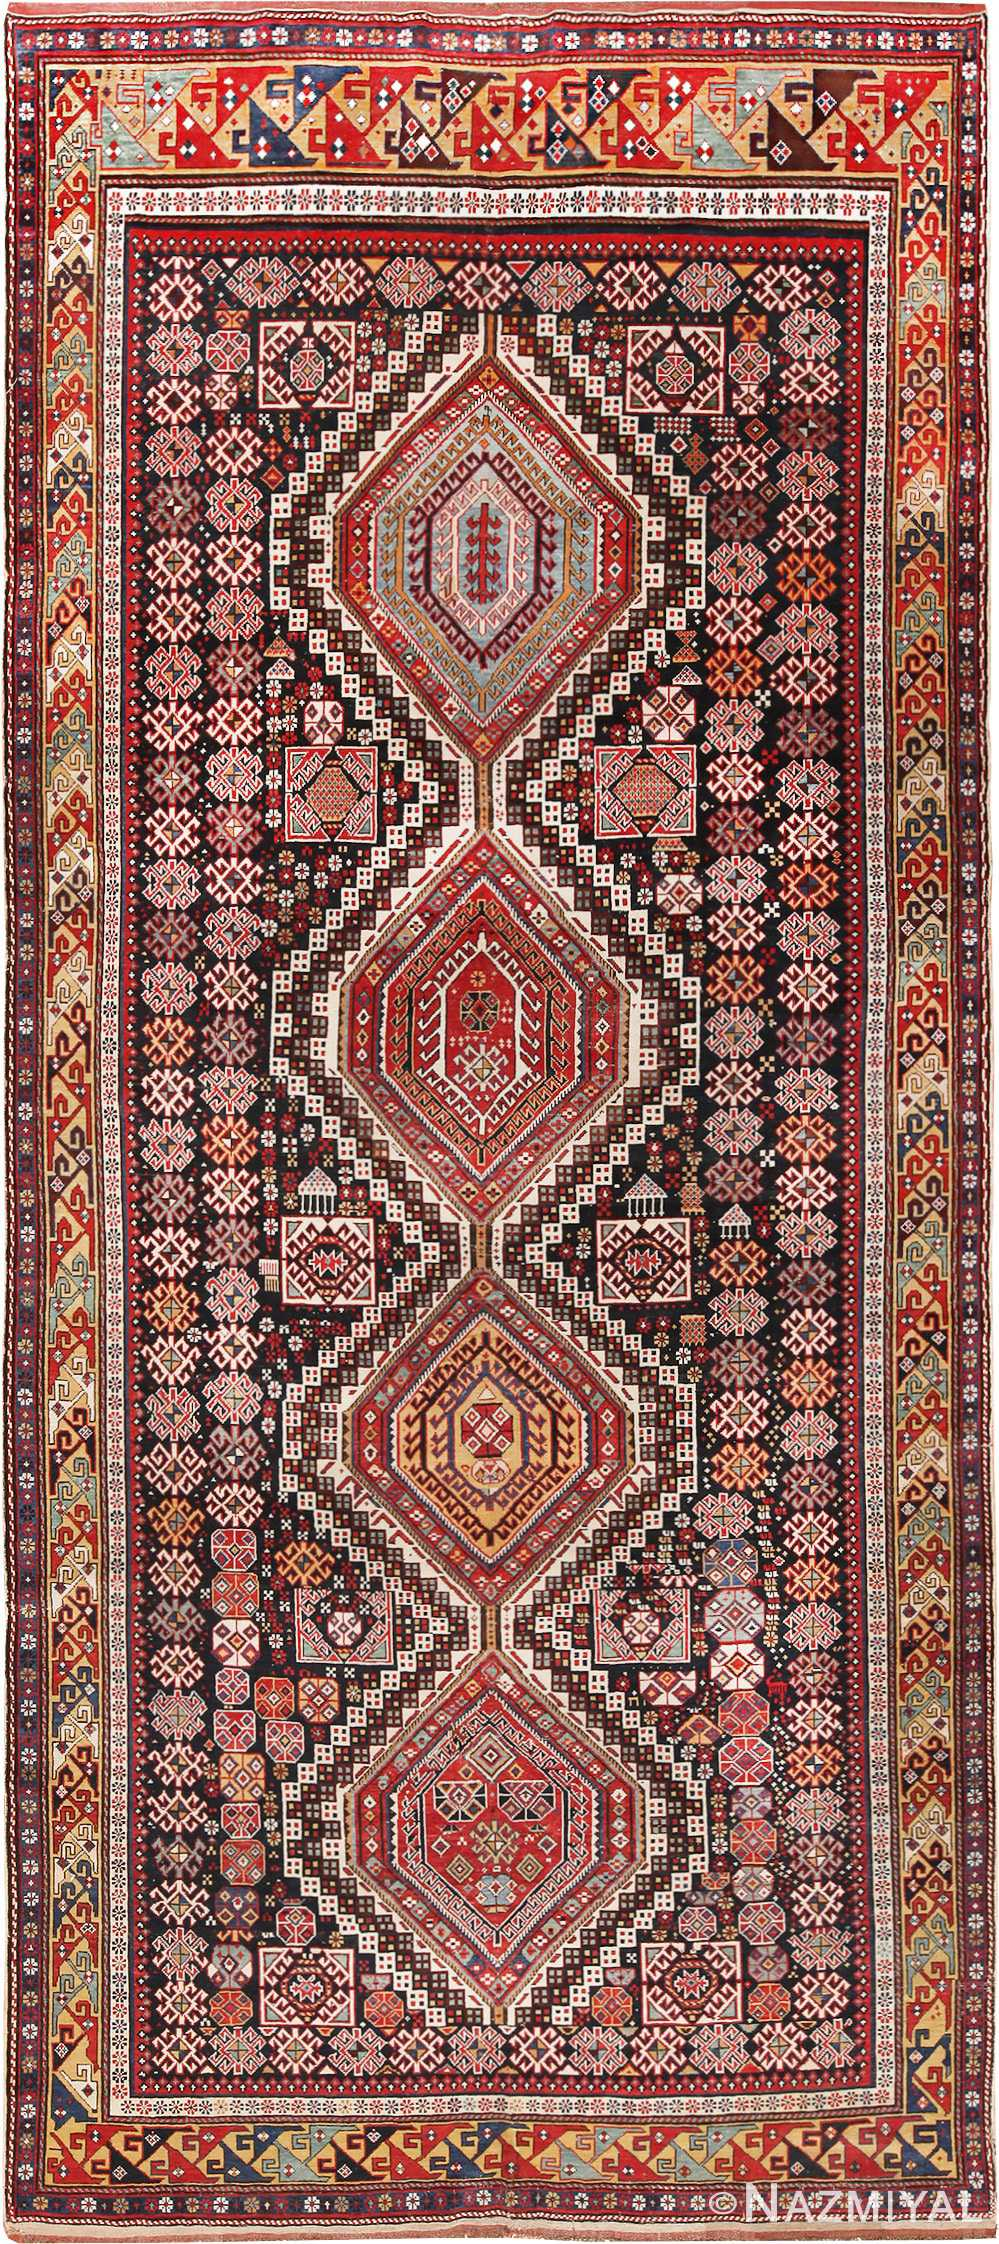 Picture of the Tribal Collectible Antique Caucasian Shirvan Rug #70038 from Nazmiyal Antique Rugs in NYC